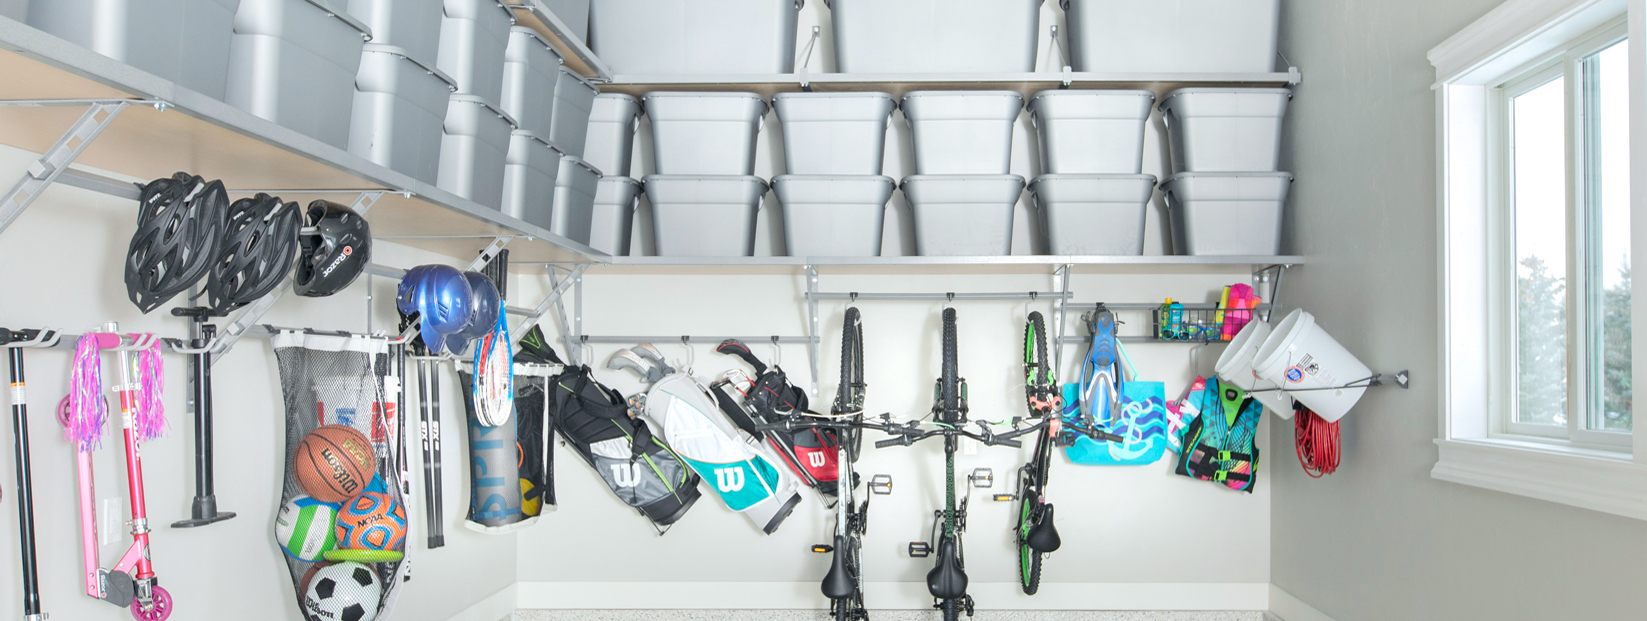 Garage Shelving Tulsa